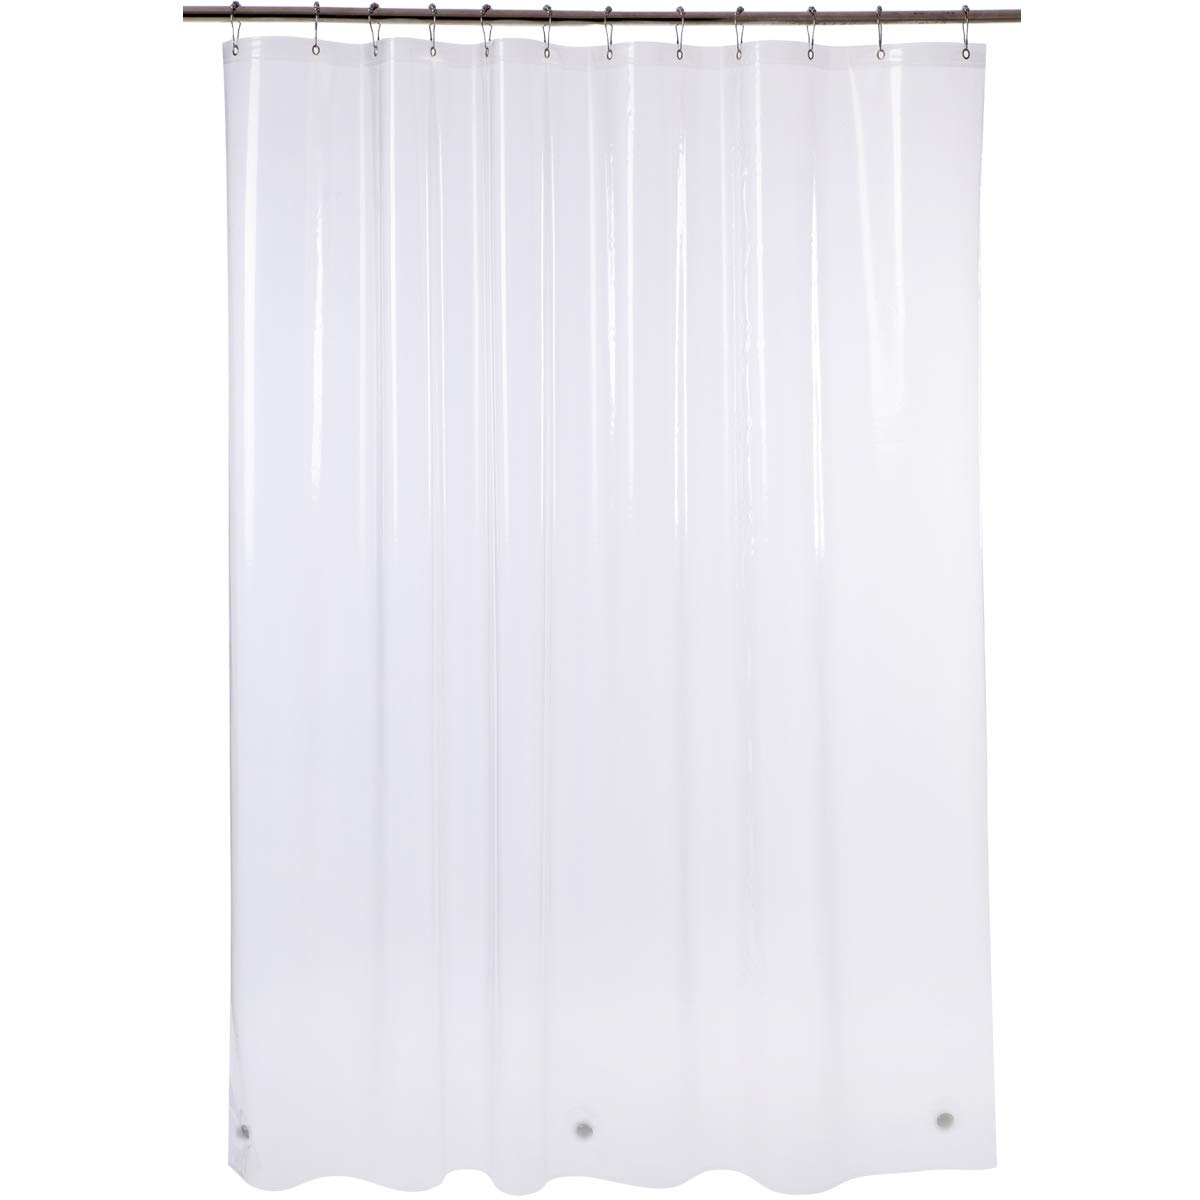 "Amazer Shower Curtain Liner, 72"" W x 72"" H Clear EVA 5G Bathroom Shower Curtains No Smell with Rustproof Grommets Holes"